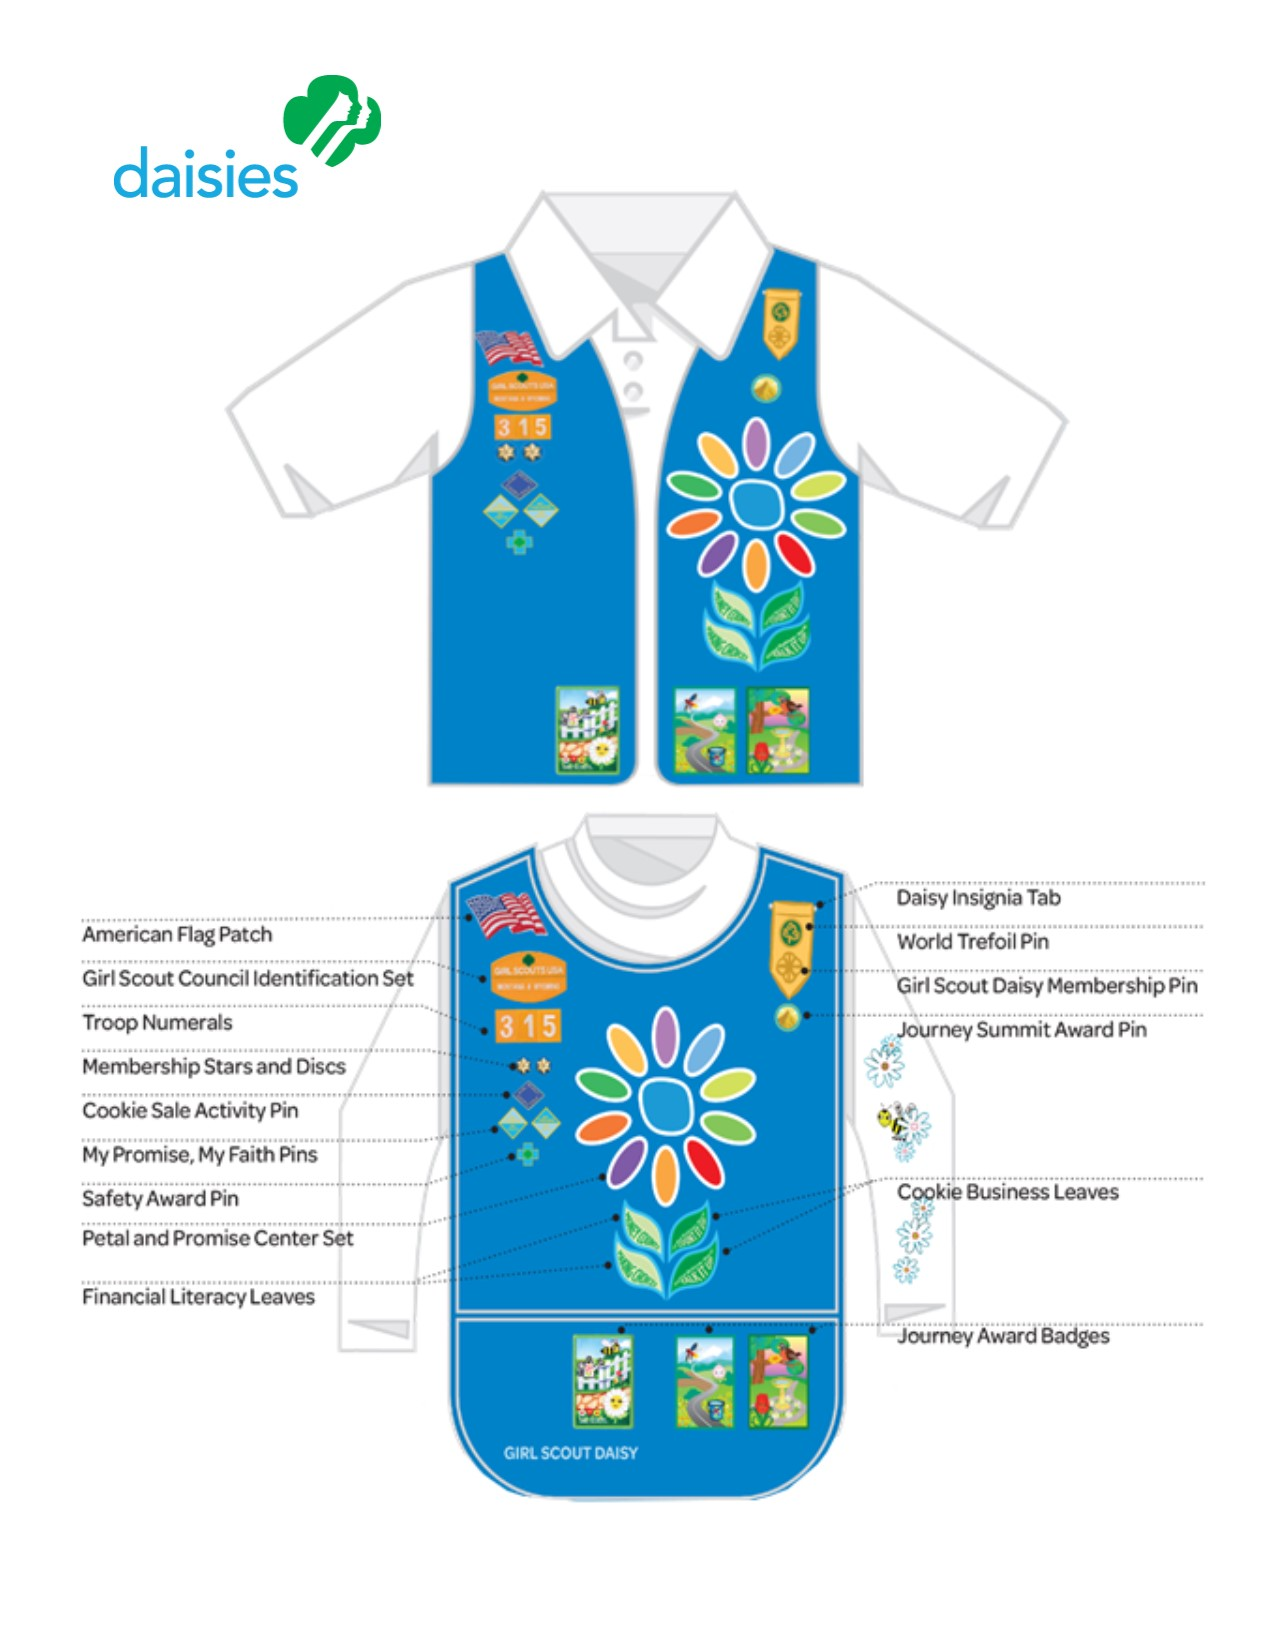 daisy tunic diagram of supplementary angles 2018  girl scout images senior picture